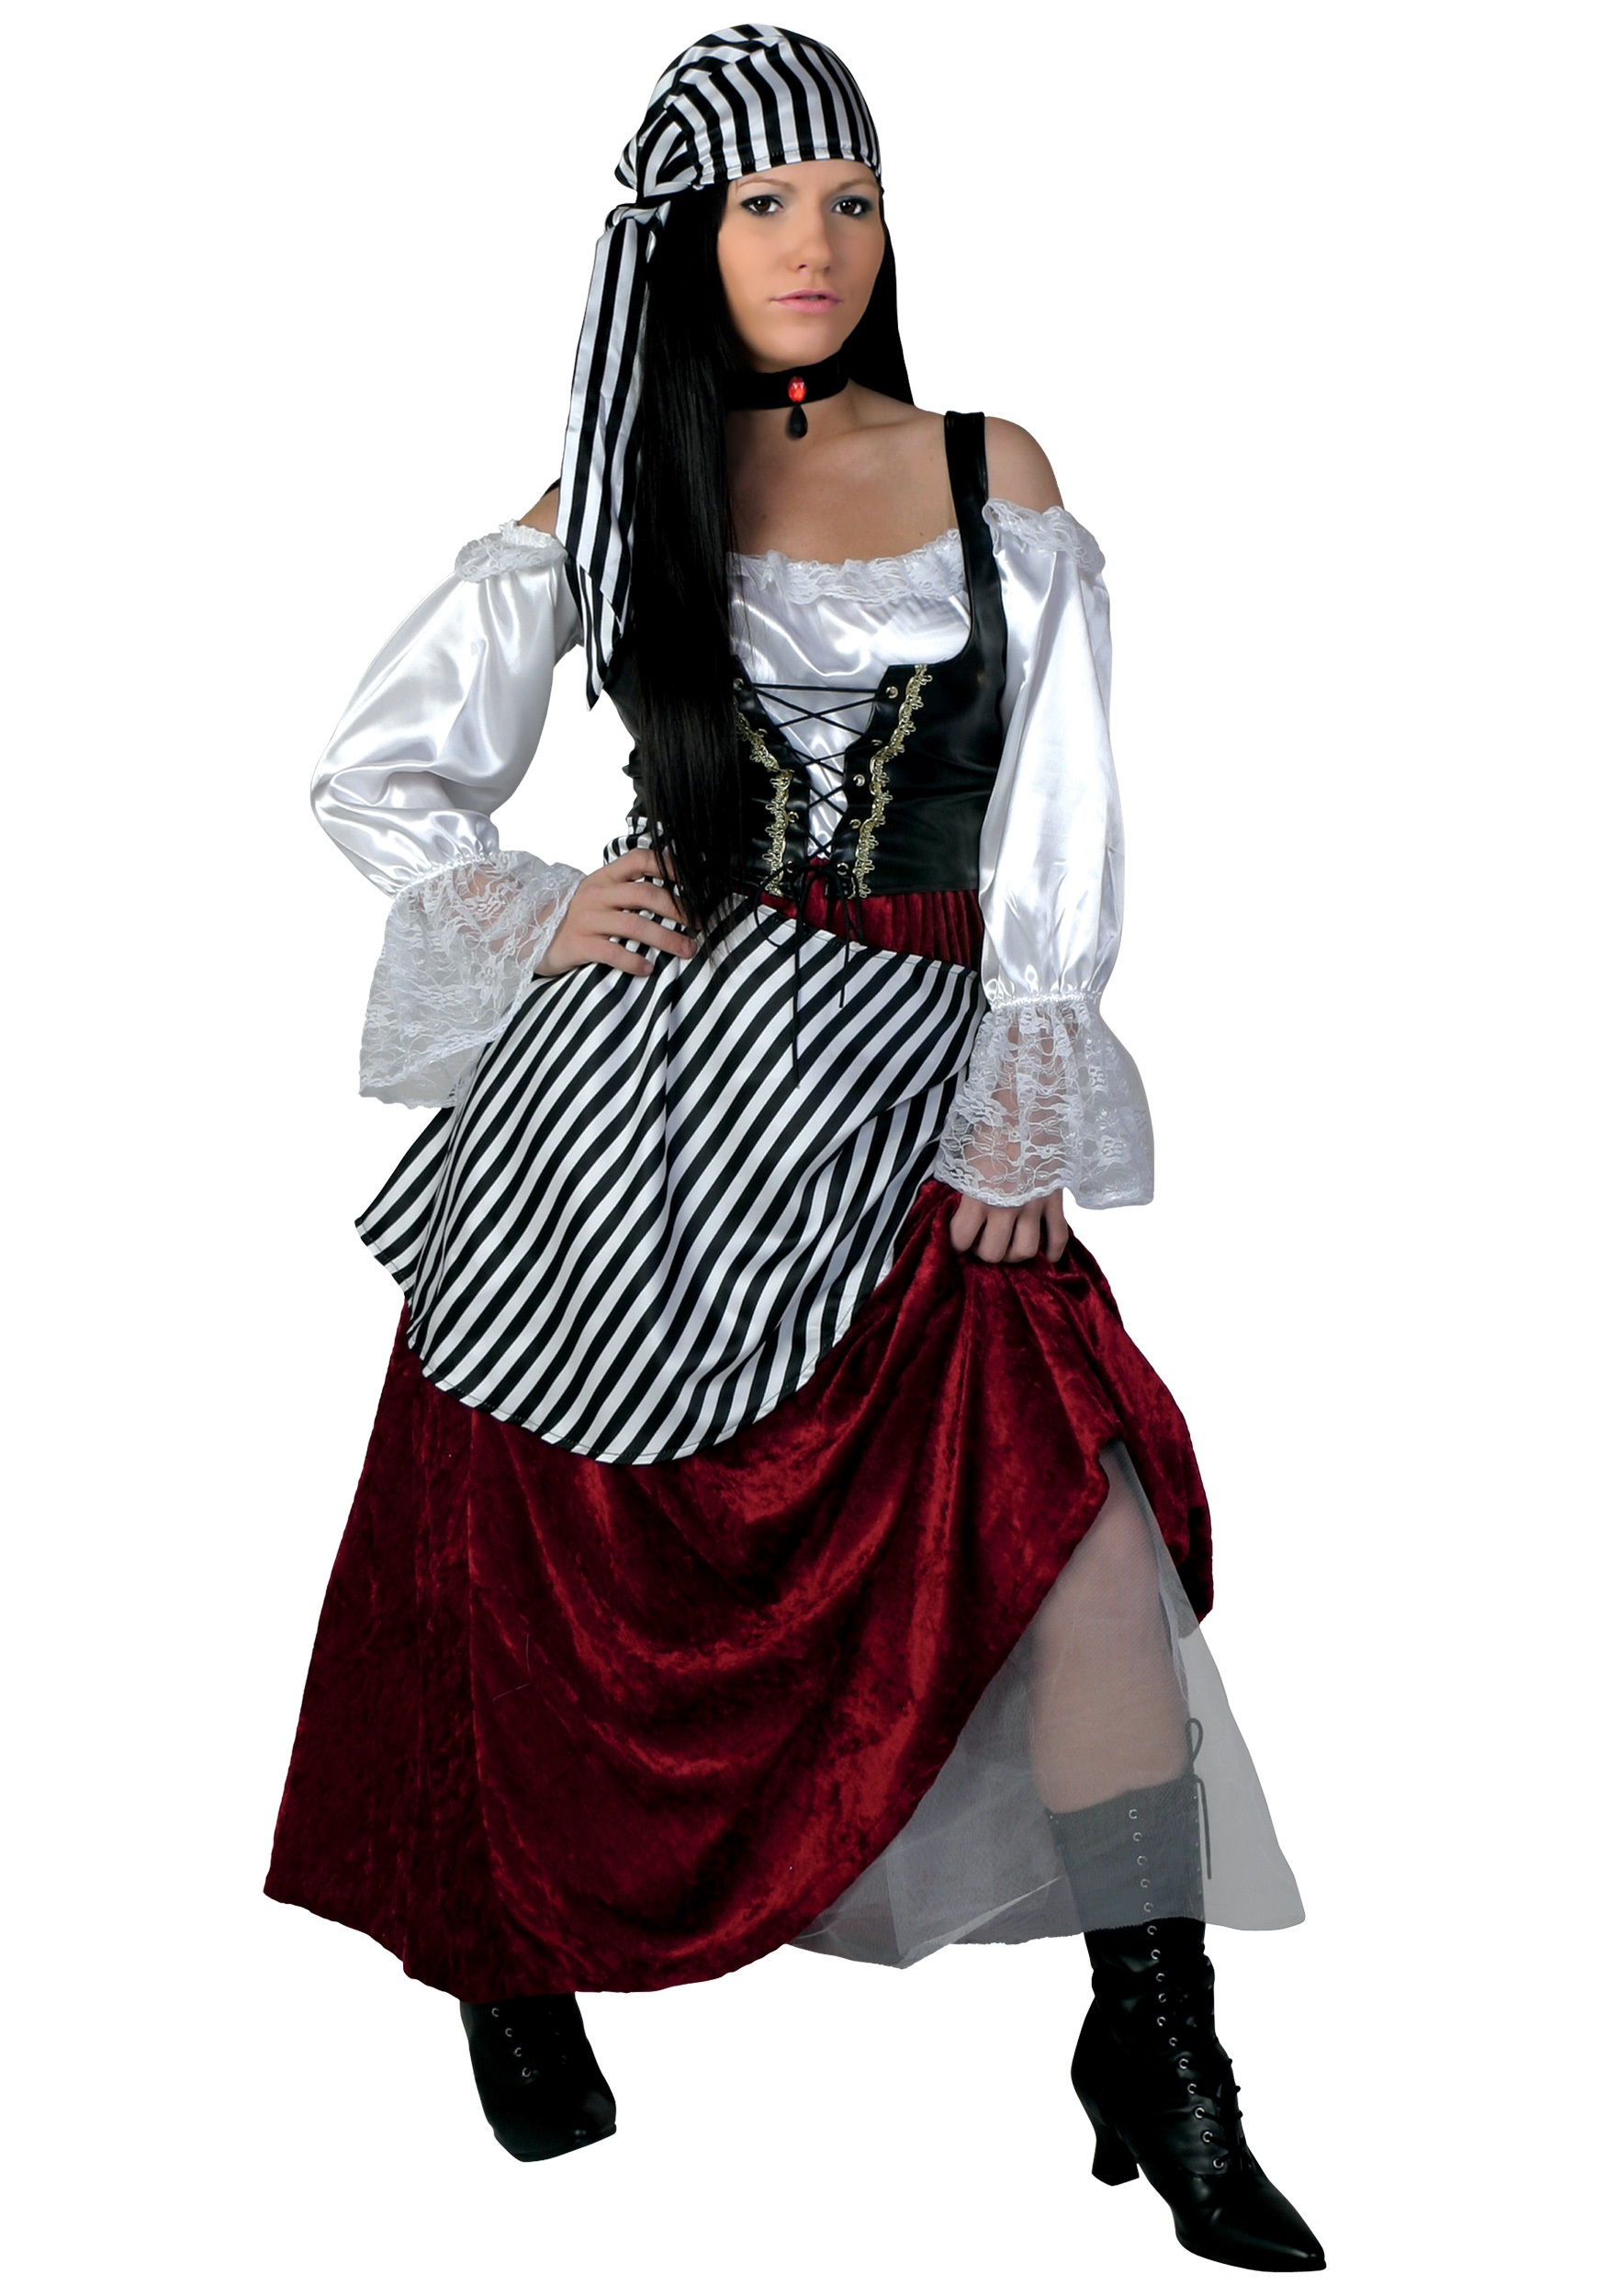 Deluxe Pirate Wench Plus Size Womenu0027s Costume  sc 1 st  Fun.com & Deluxe Pirate Wench Plus Size Costume for Women